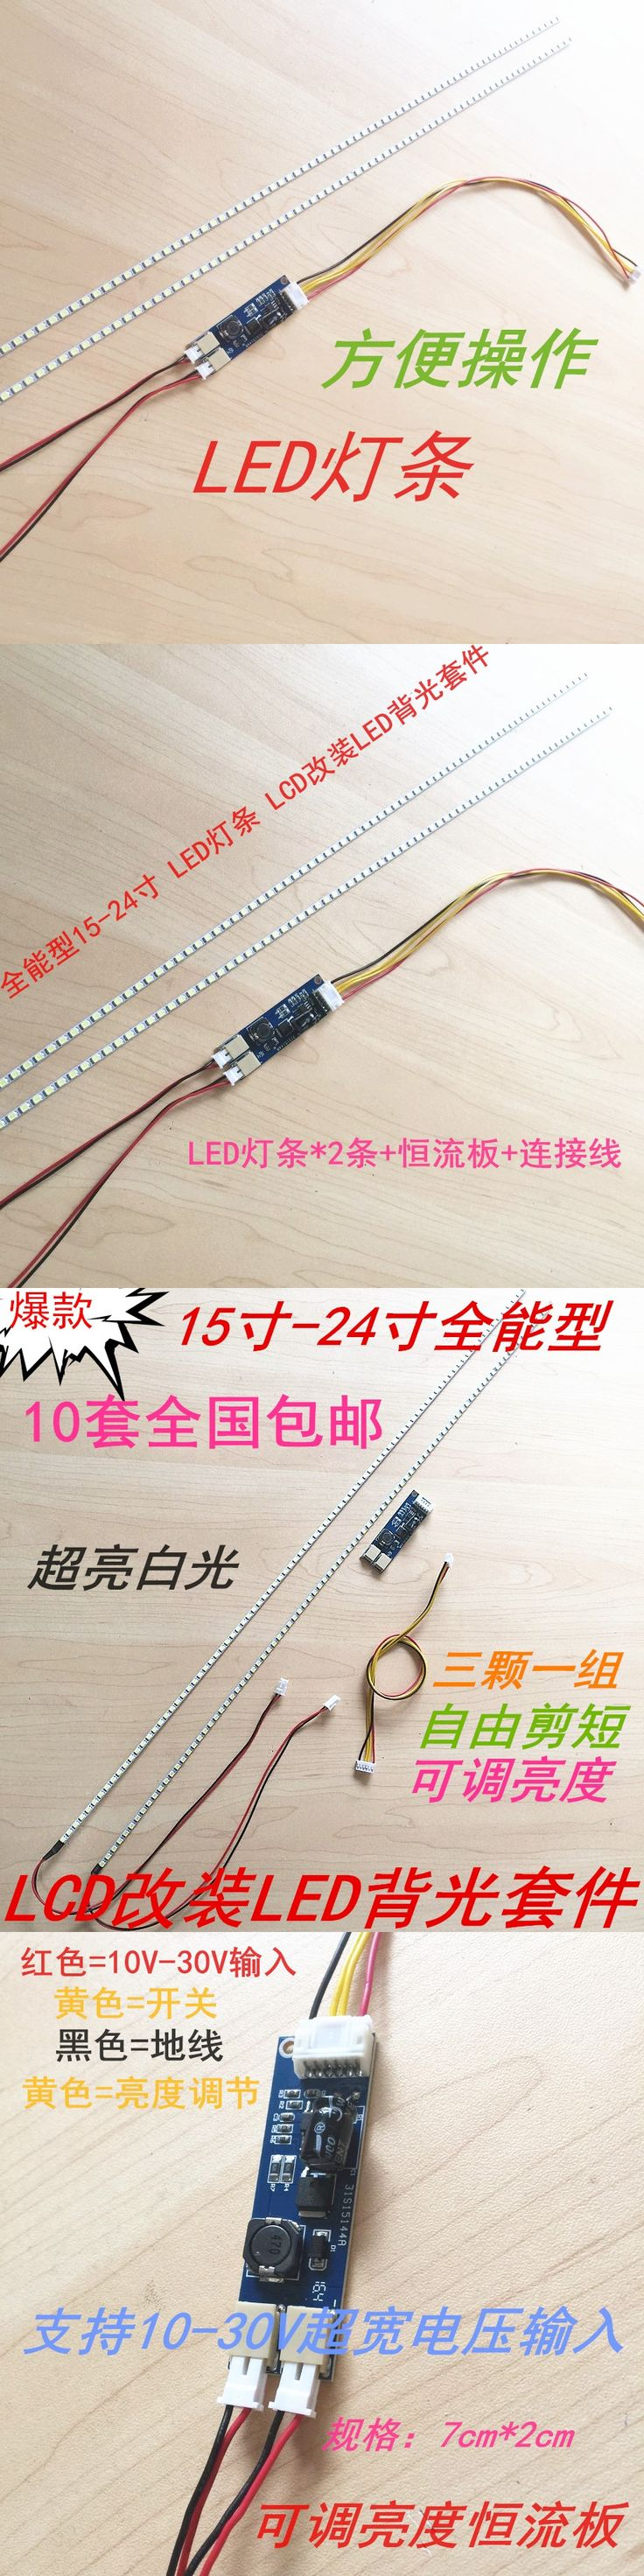 19 inch 22 inch 24 inch widescreen universal dimmable LED light bar kit LCD lamp LCD modified LED backlight